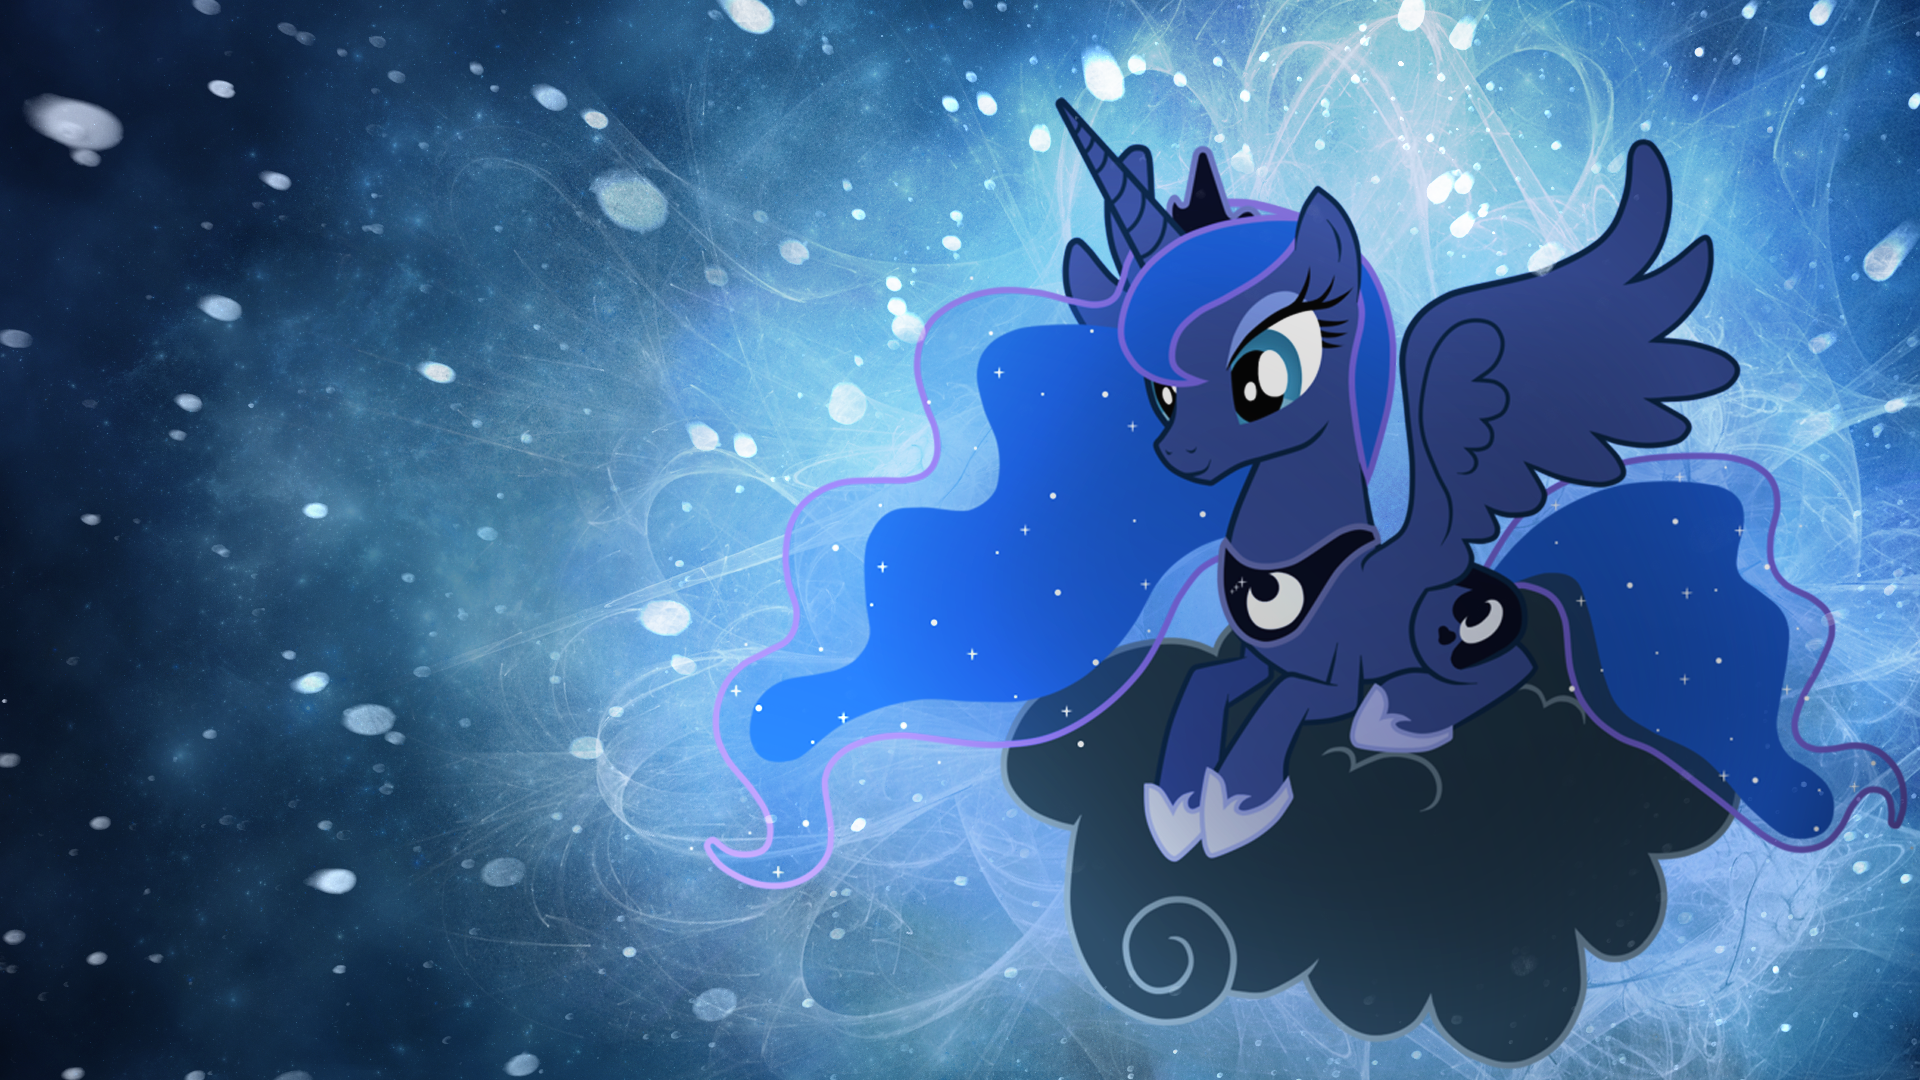 Crystal Heart Images Princess Luna Wallpaper HD And Background Photos